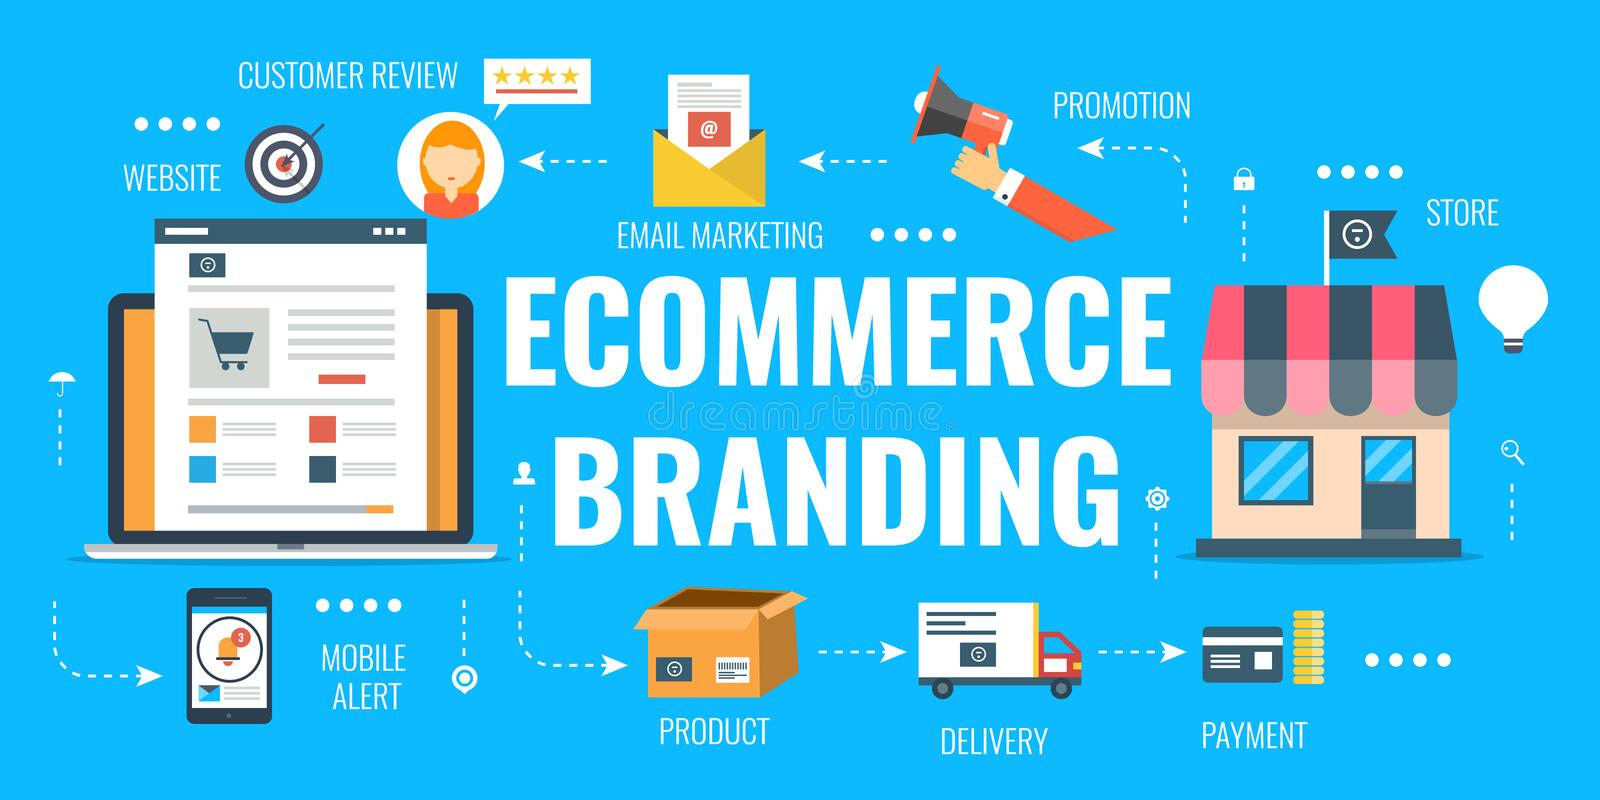 Branding For Ecommerce Sales Ecommerce Website Marketing Flat Design Ecommerce Banner Stock Vector Illustration Of Campaign Company 103949402